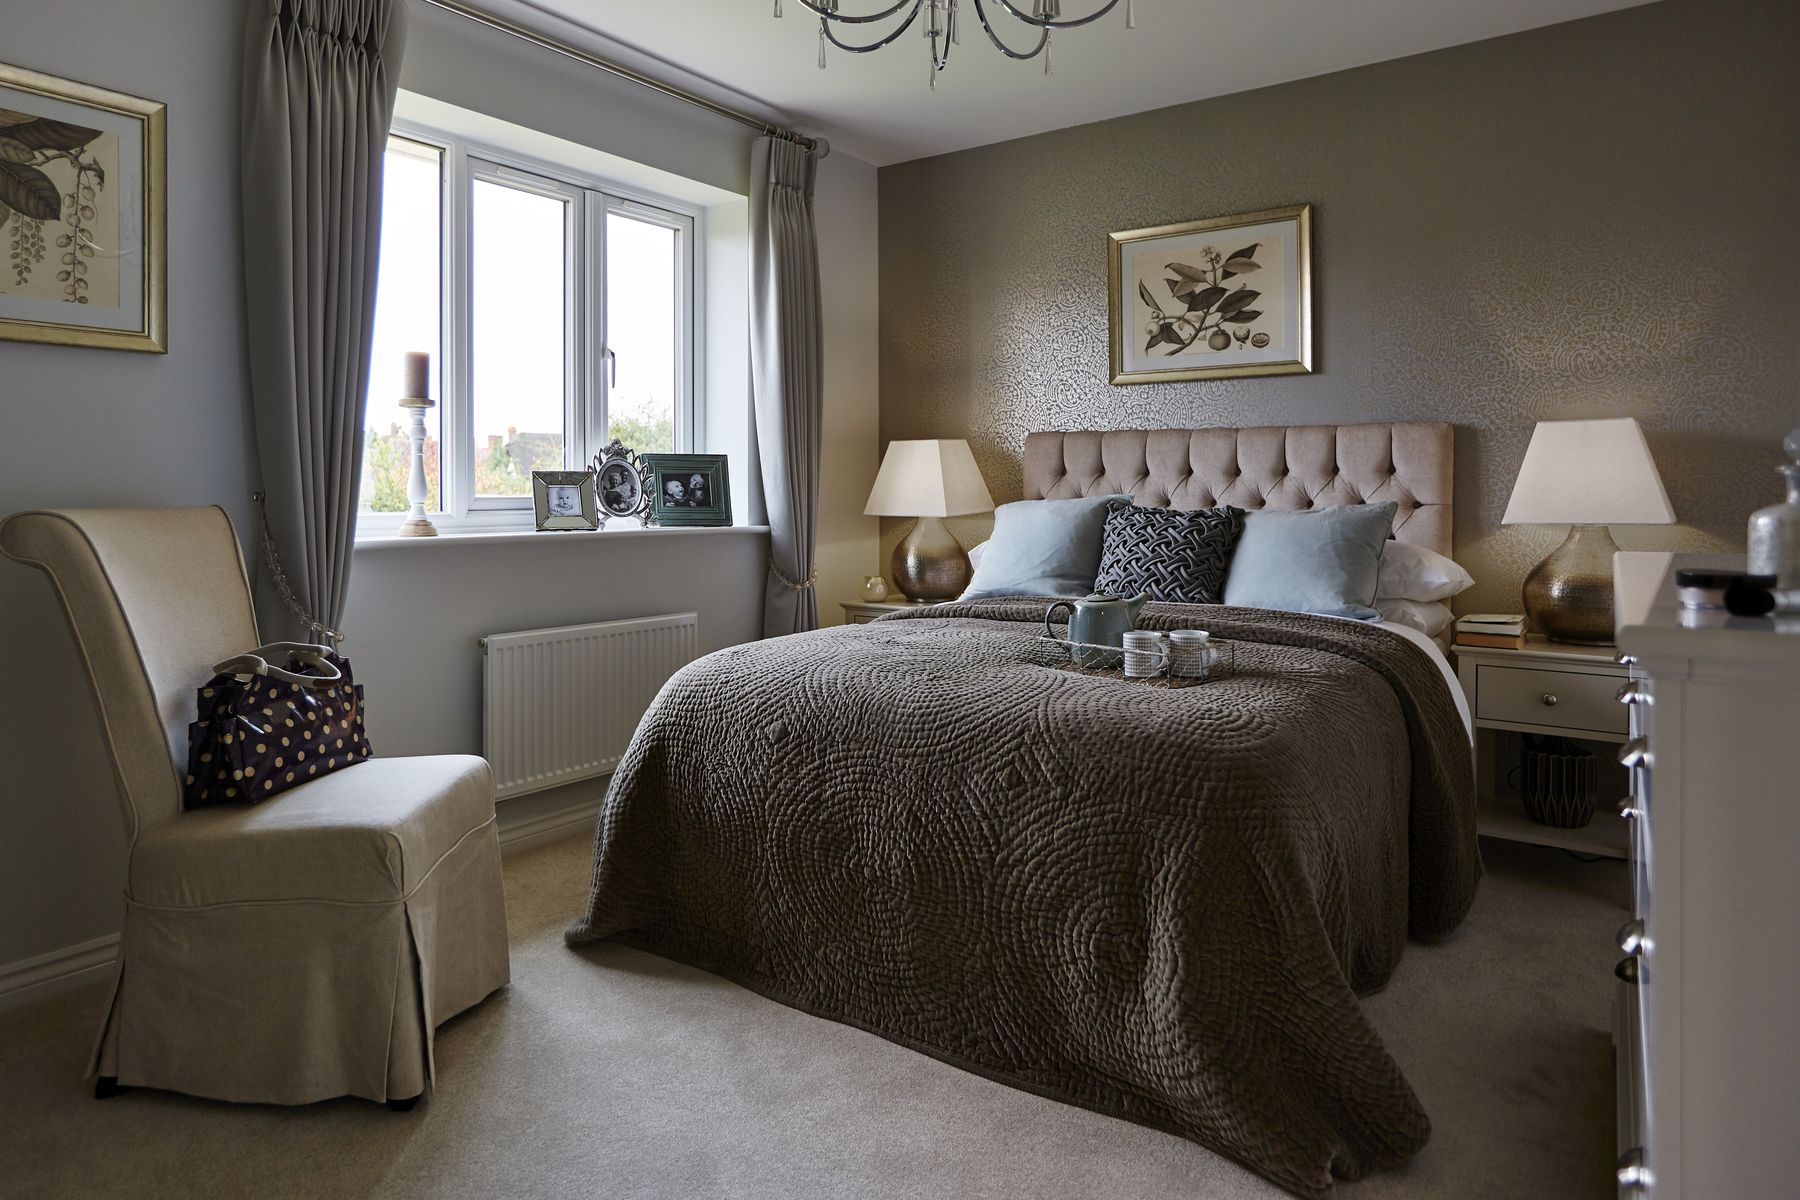 tw_mids_fair_acres_honeybourne_pd49_downham_master_bedroom